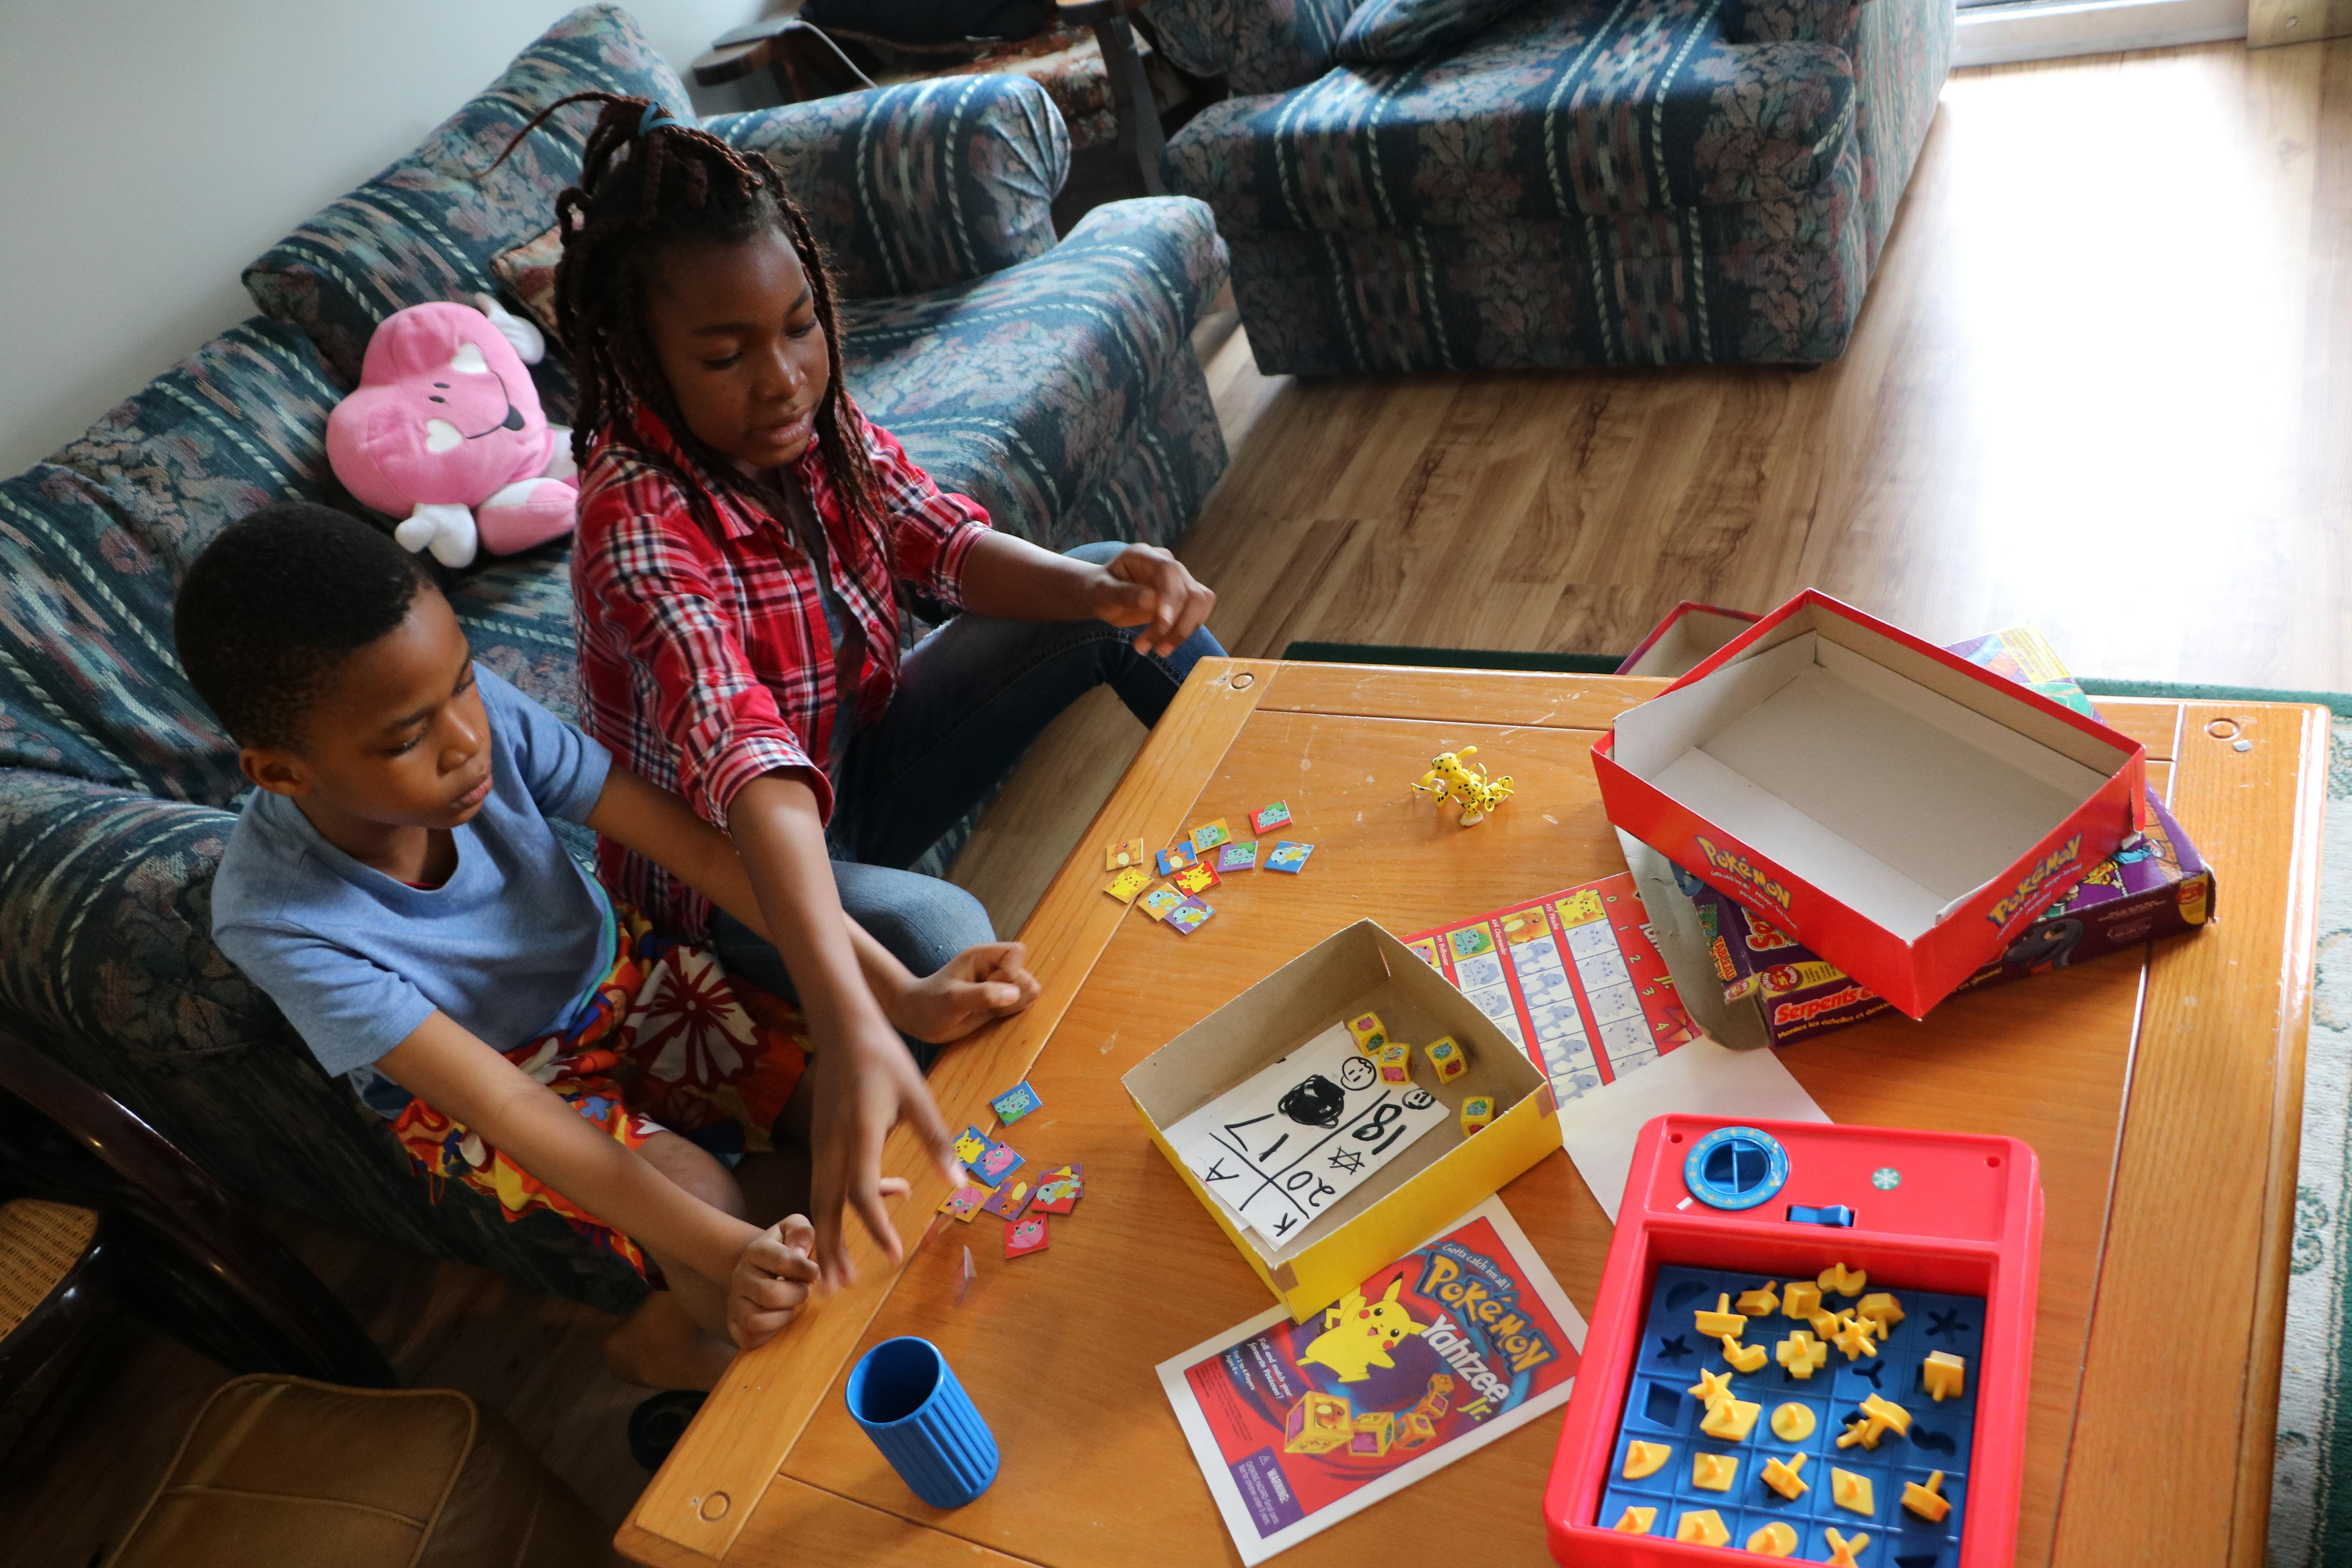 The children won't be in school until next fall, and currently spend their days trying to occupy themselves in the apartment. (Benjamin Shingler/CBC)